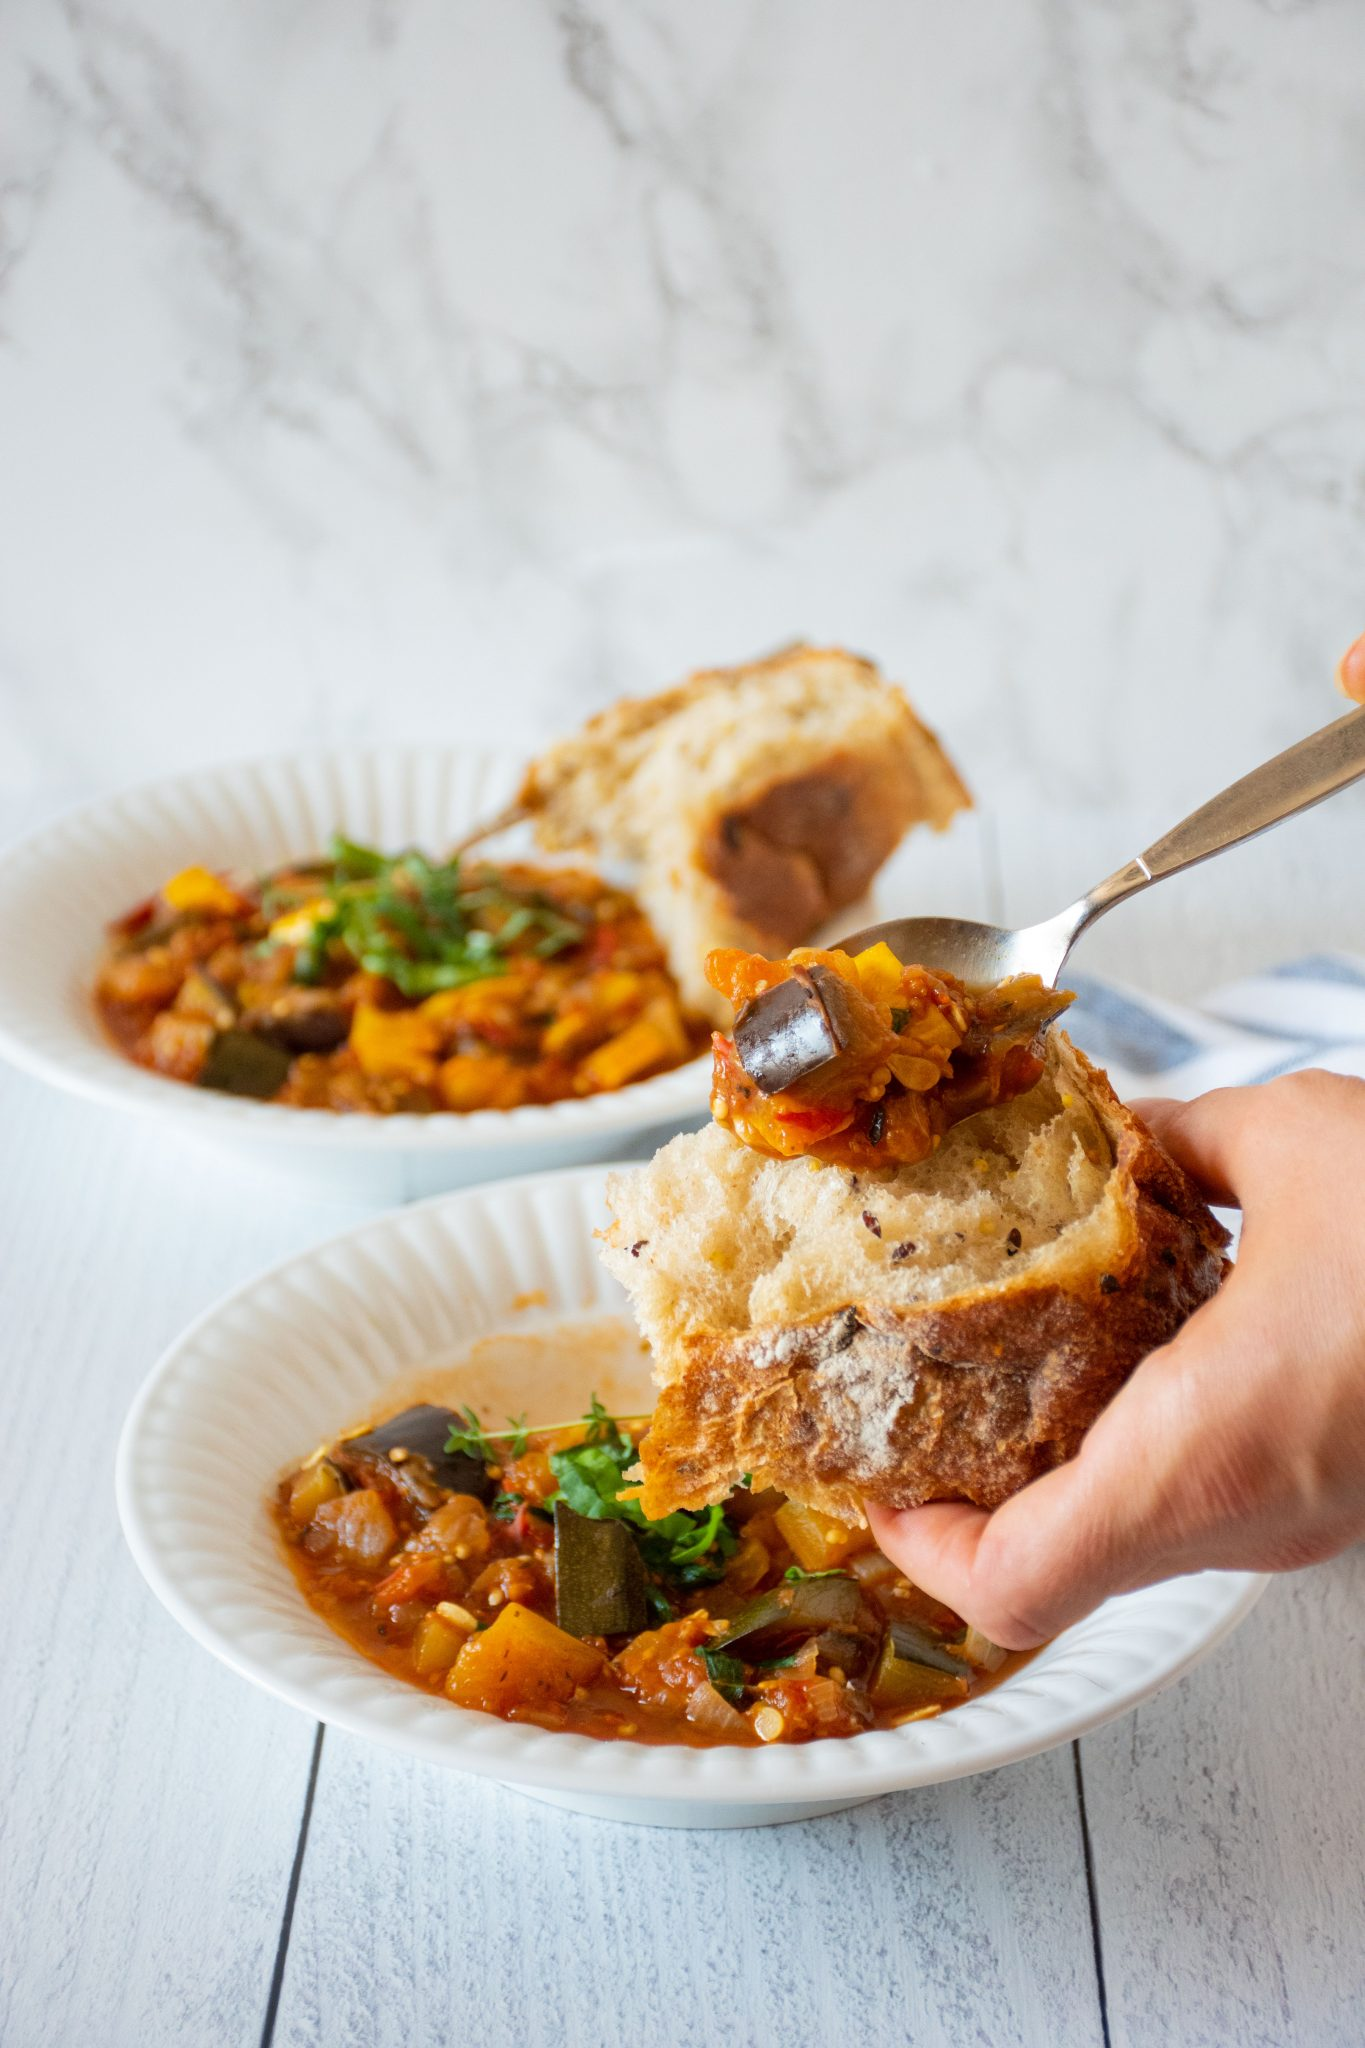 Hand holding a rustic piece of bread, spooning ratatouille on it. 2 bowls of ratatouille in background.